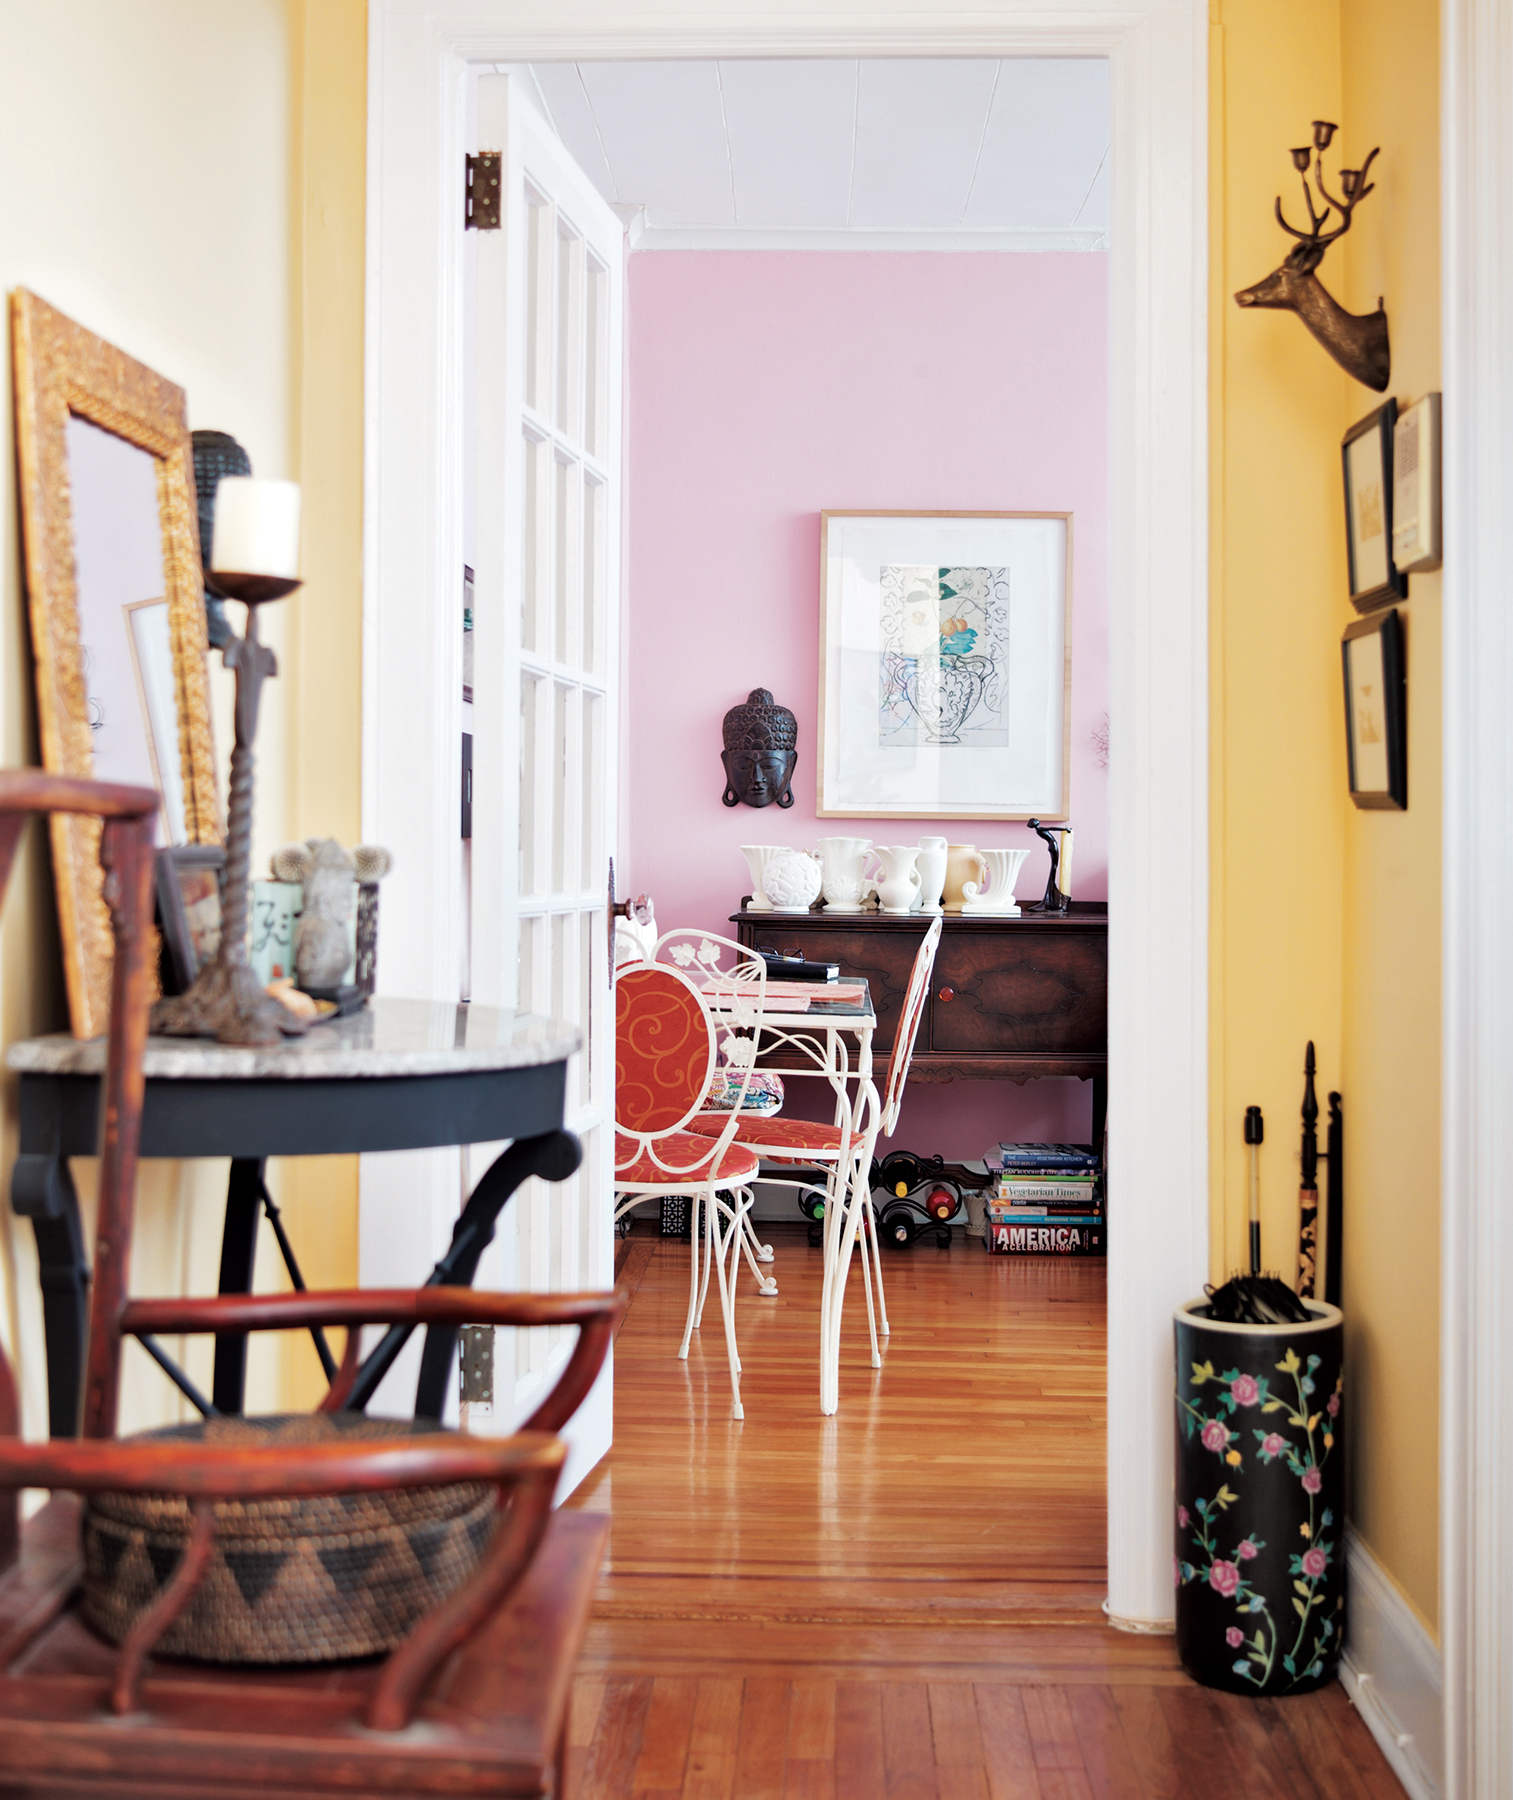 16 Before-and-After Room Makeovers | Real Simple